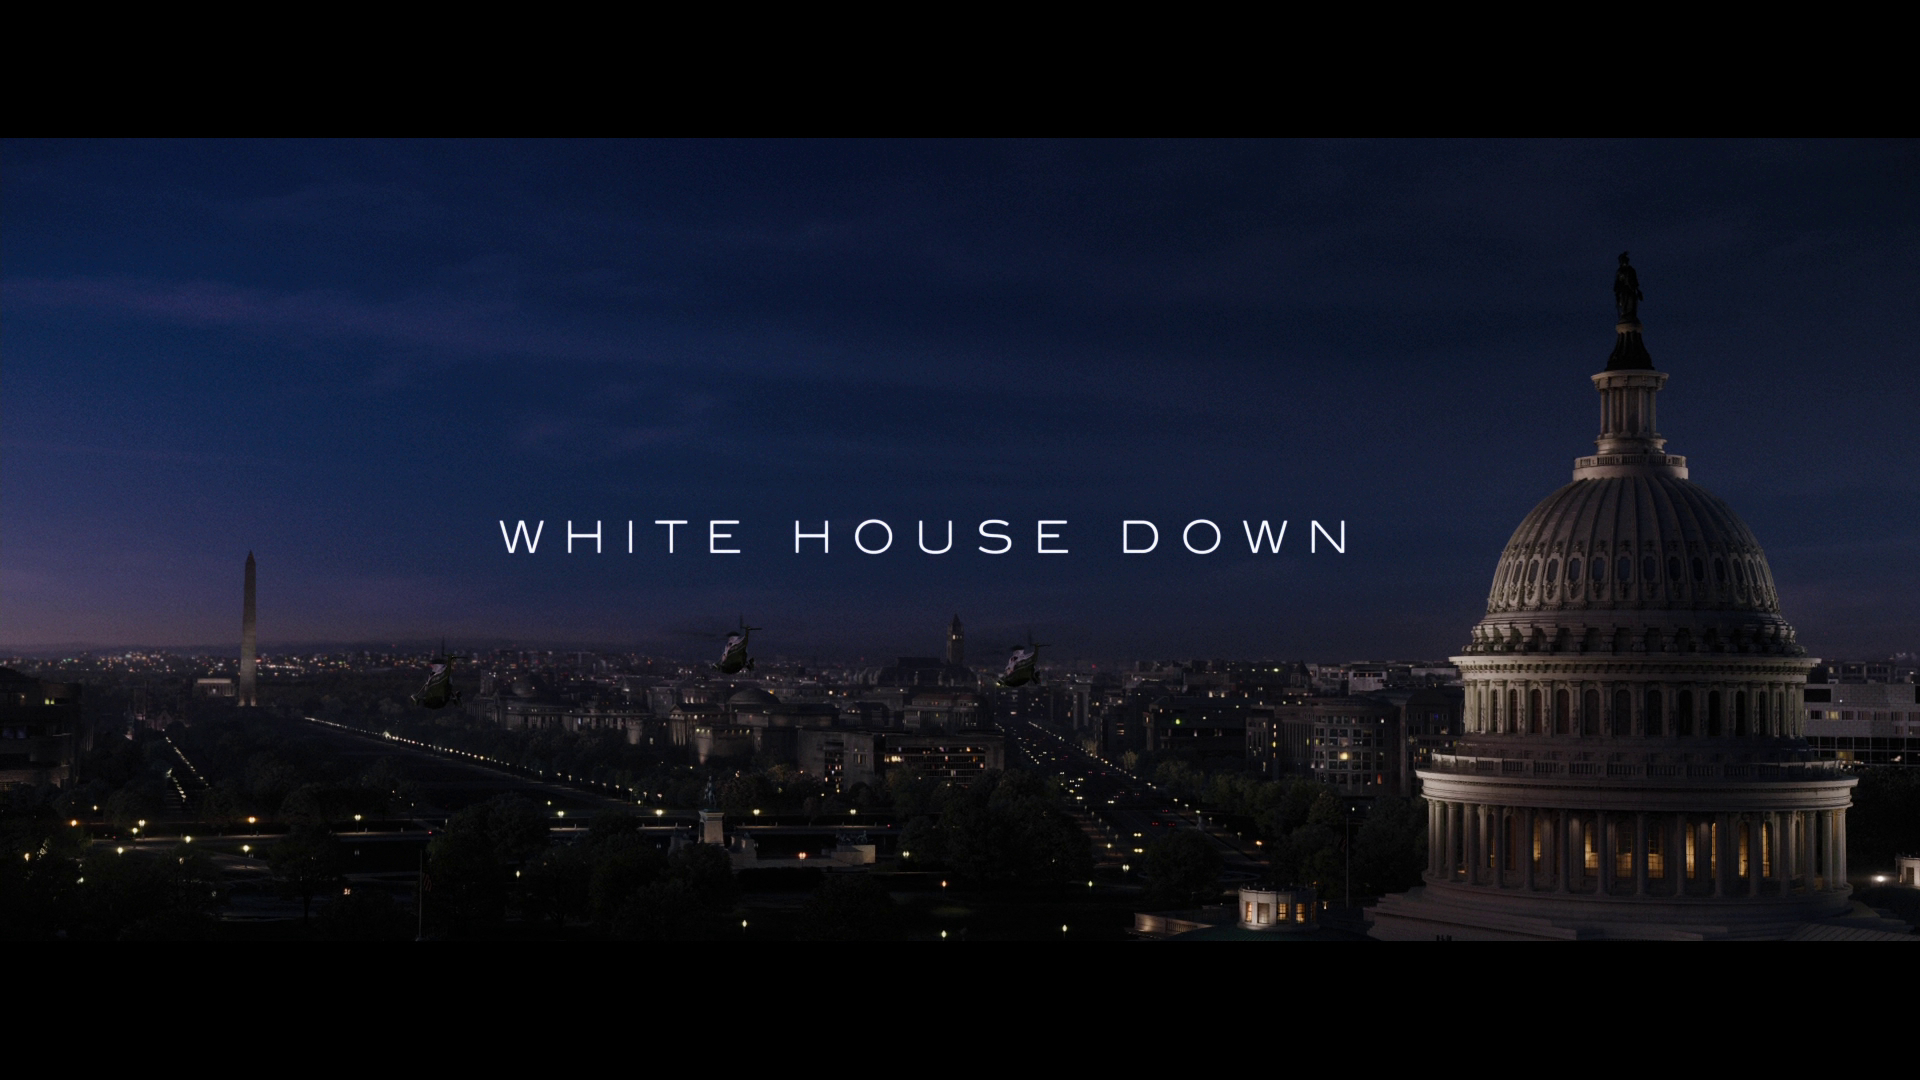 White House Down Bluray  DVD Talk Review of the Bluray